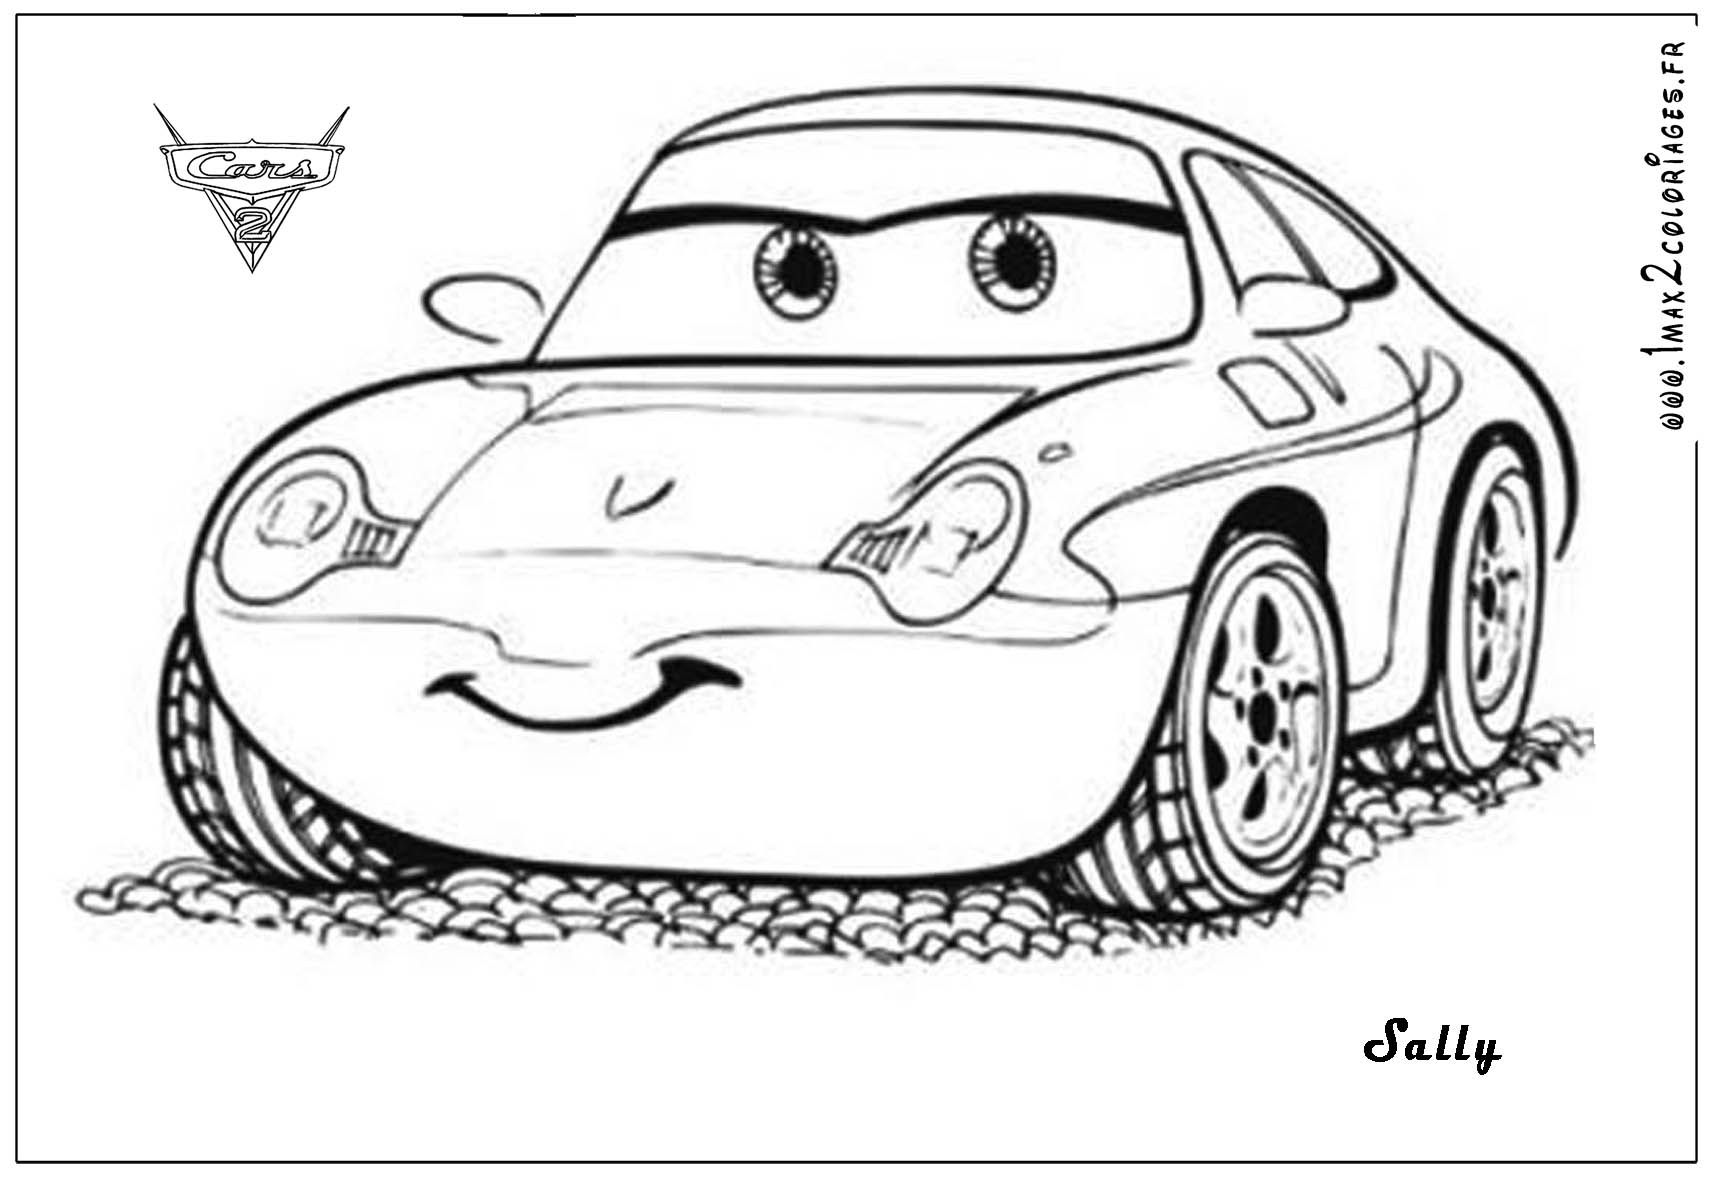 lightning mcqueen coloring pages free lightning mcqueen coloring pages free coloring pages pages mcqueen coloring lightning free